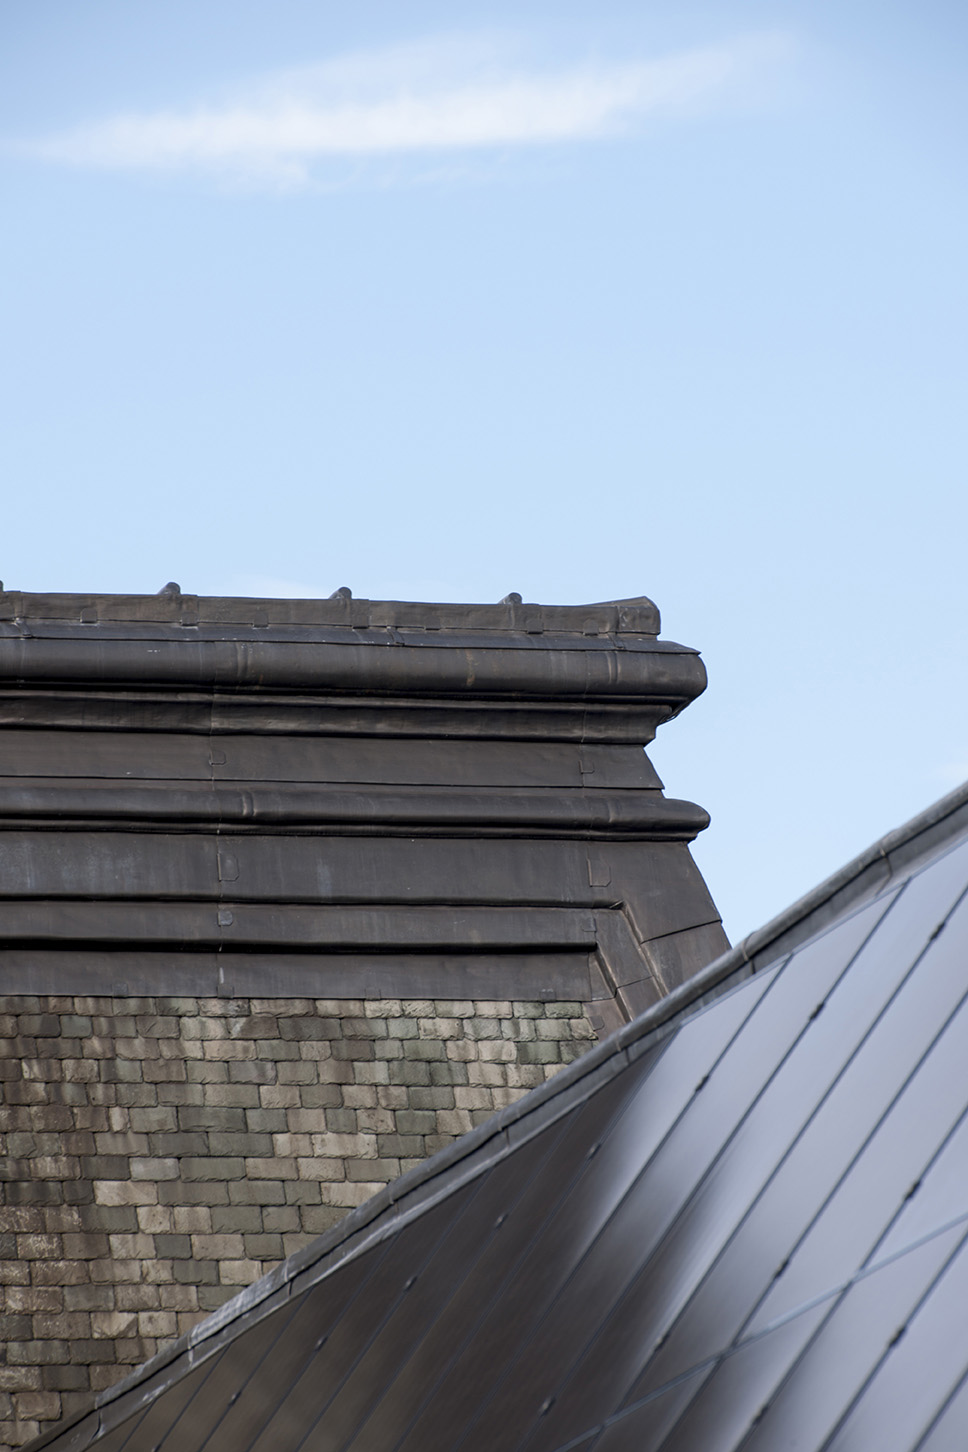 Detail of the new lead work on the Main Building roof